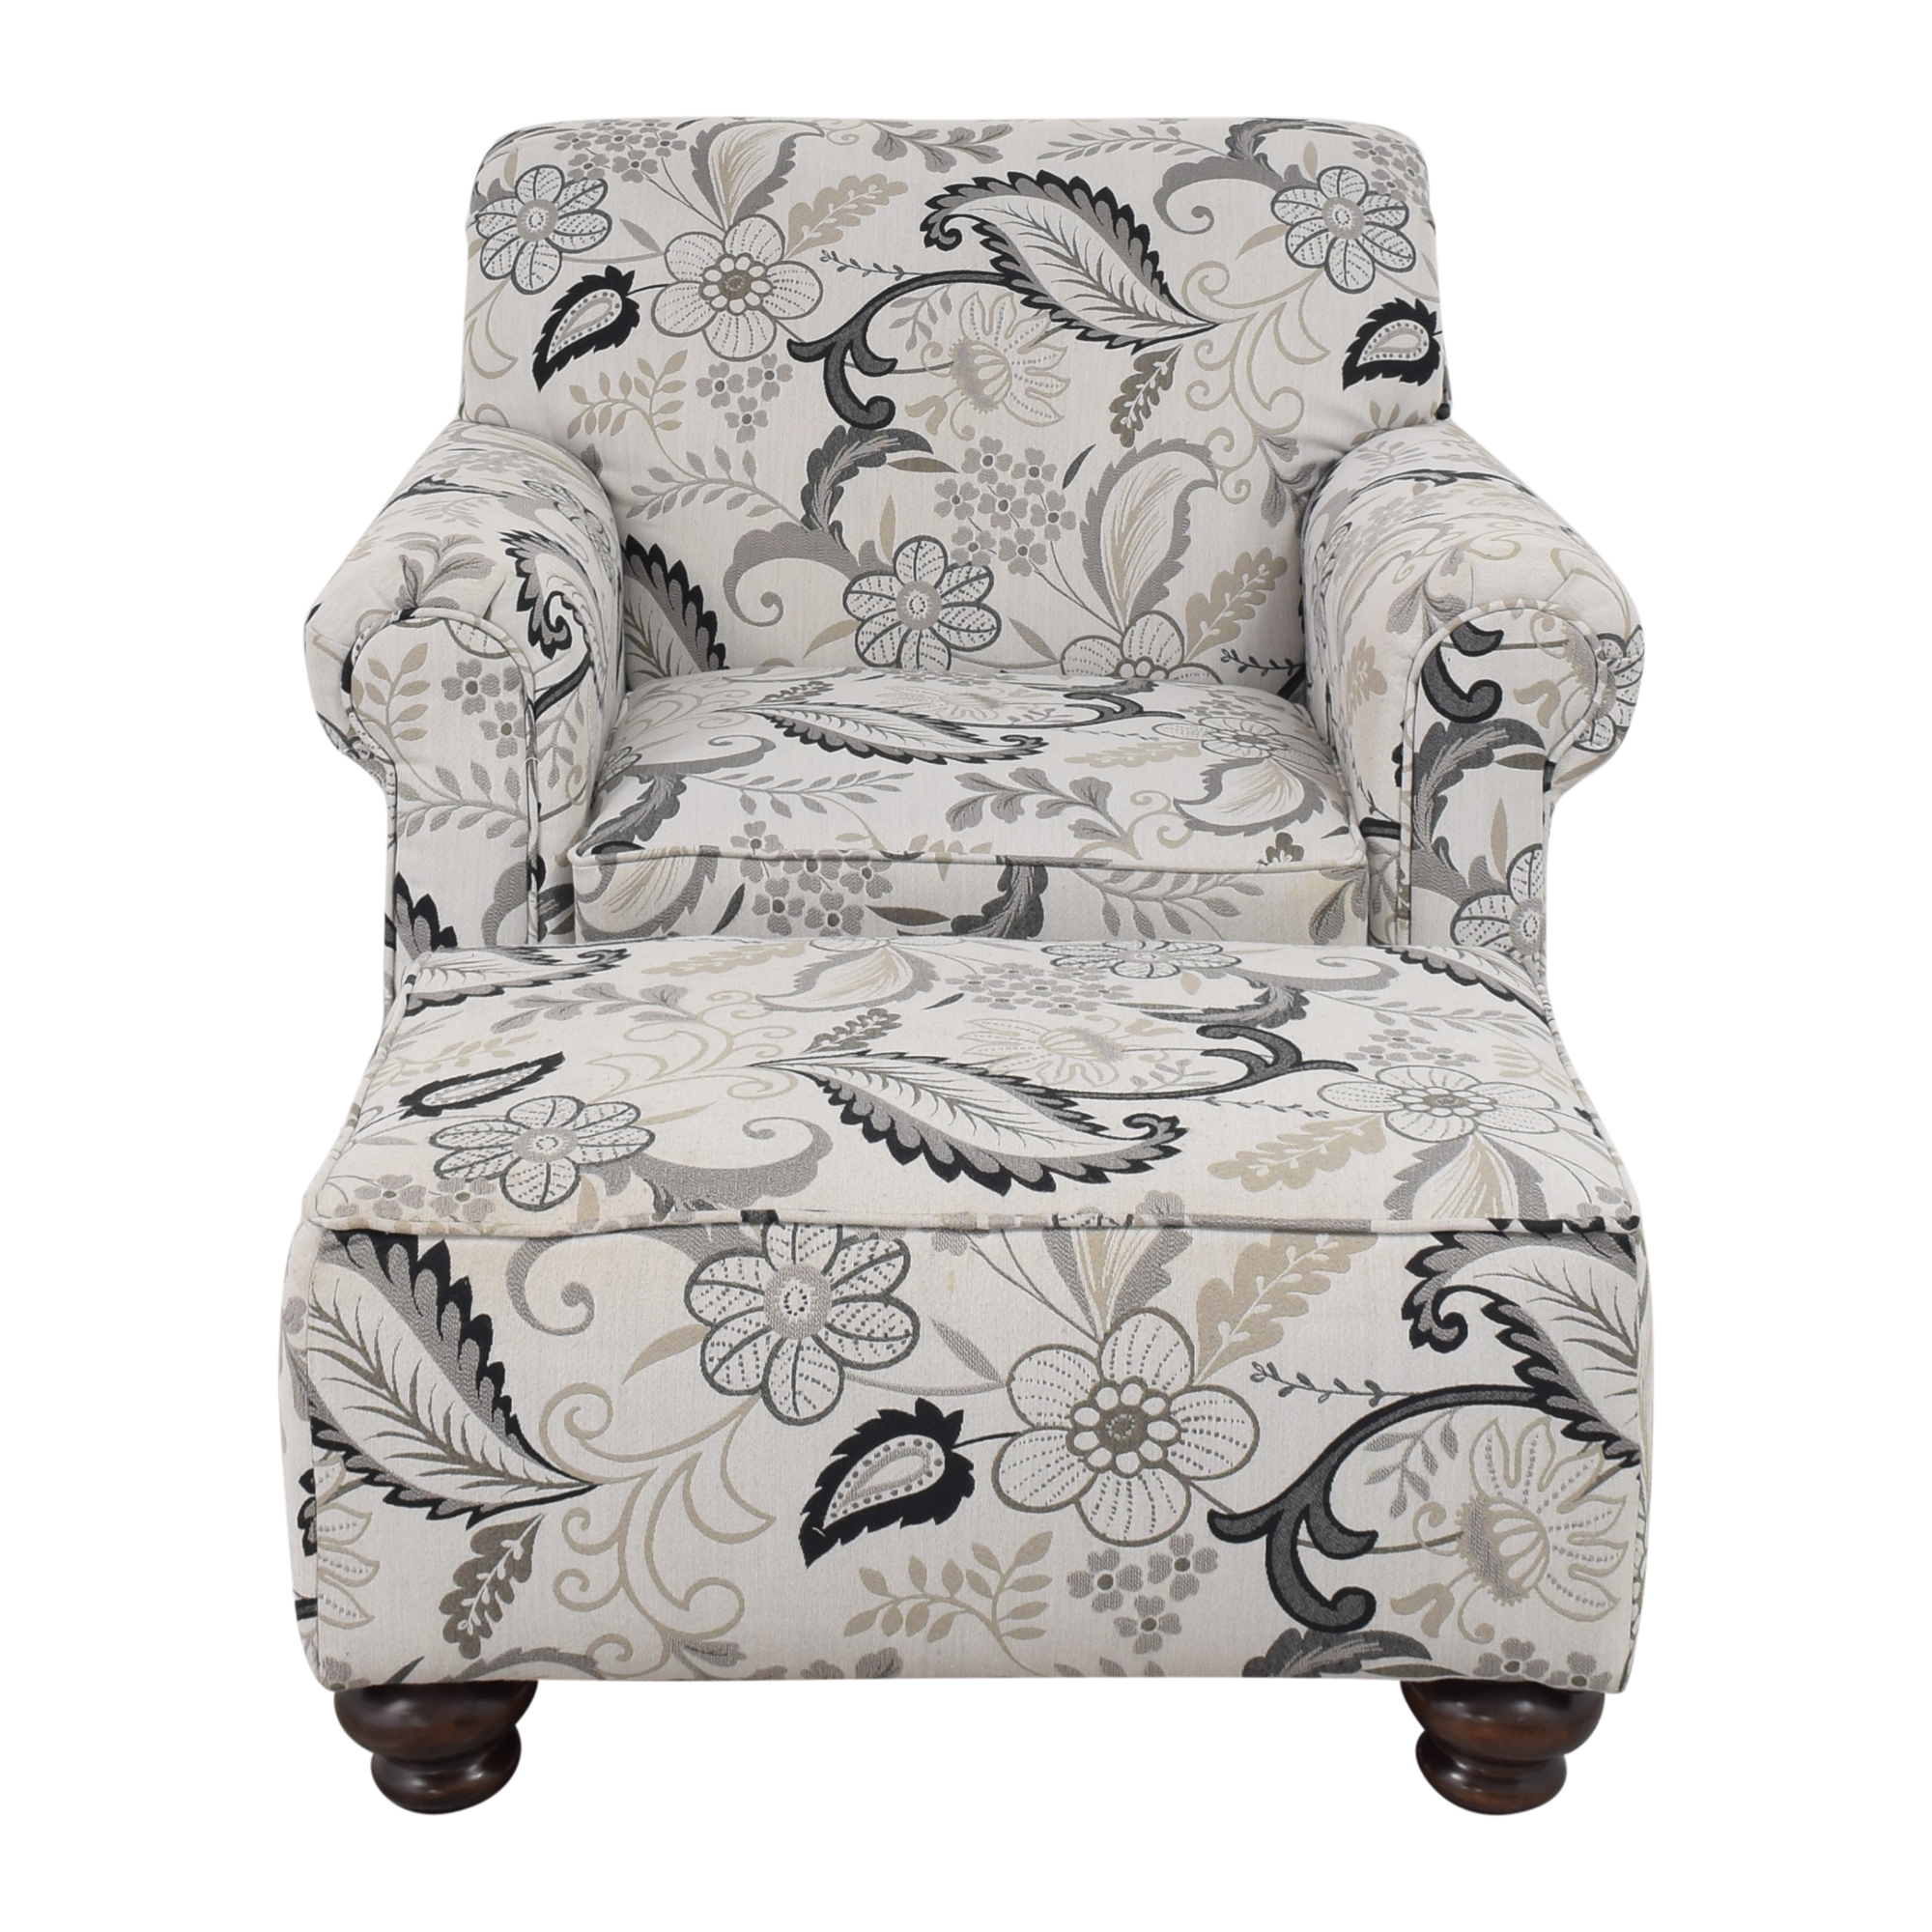 shop Stacy Furniture Floral Accent Chair with Ottoman Stacy Furniture Chairs